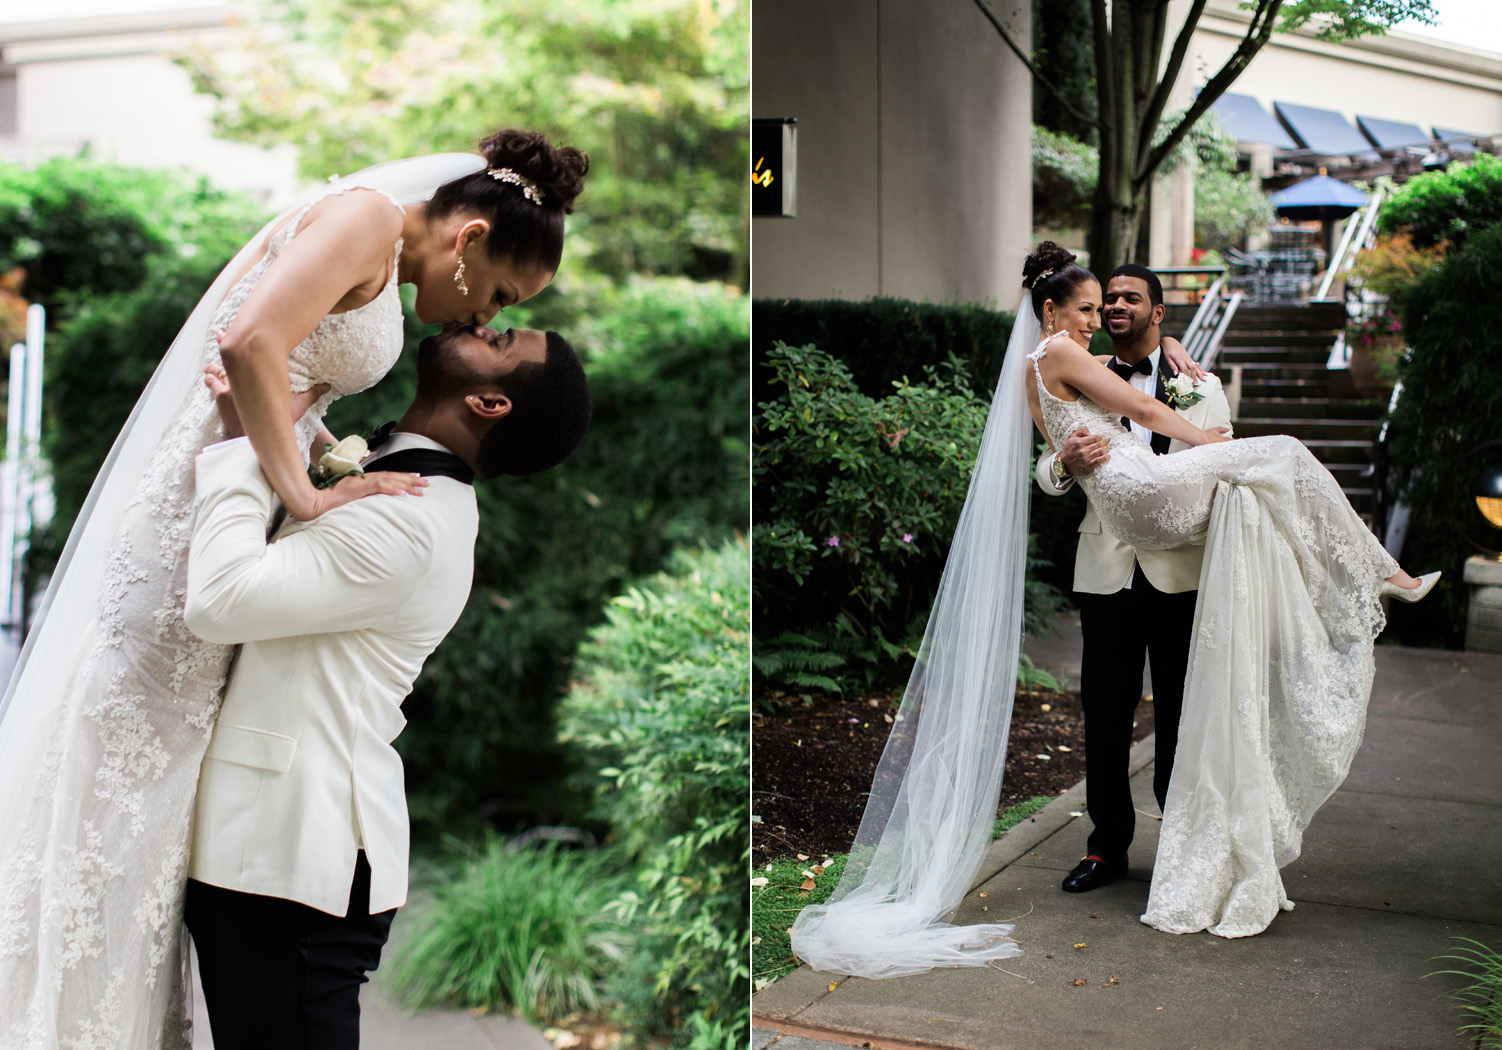 bride and groom notebook pose wedding photo.jpg